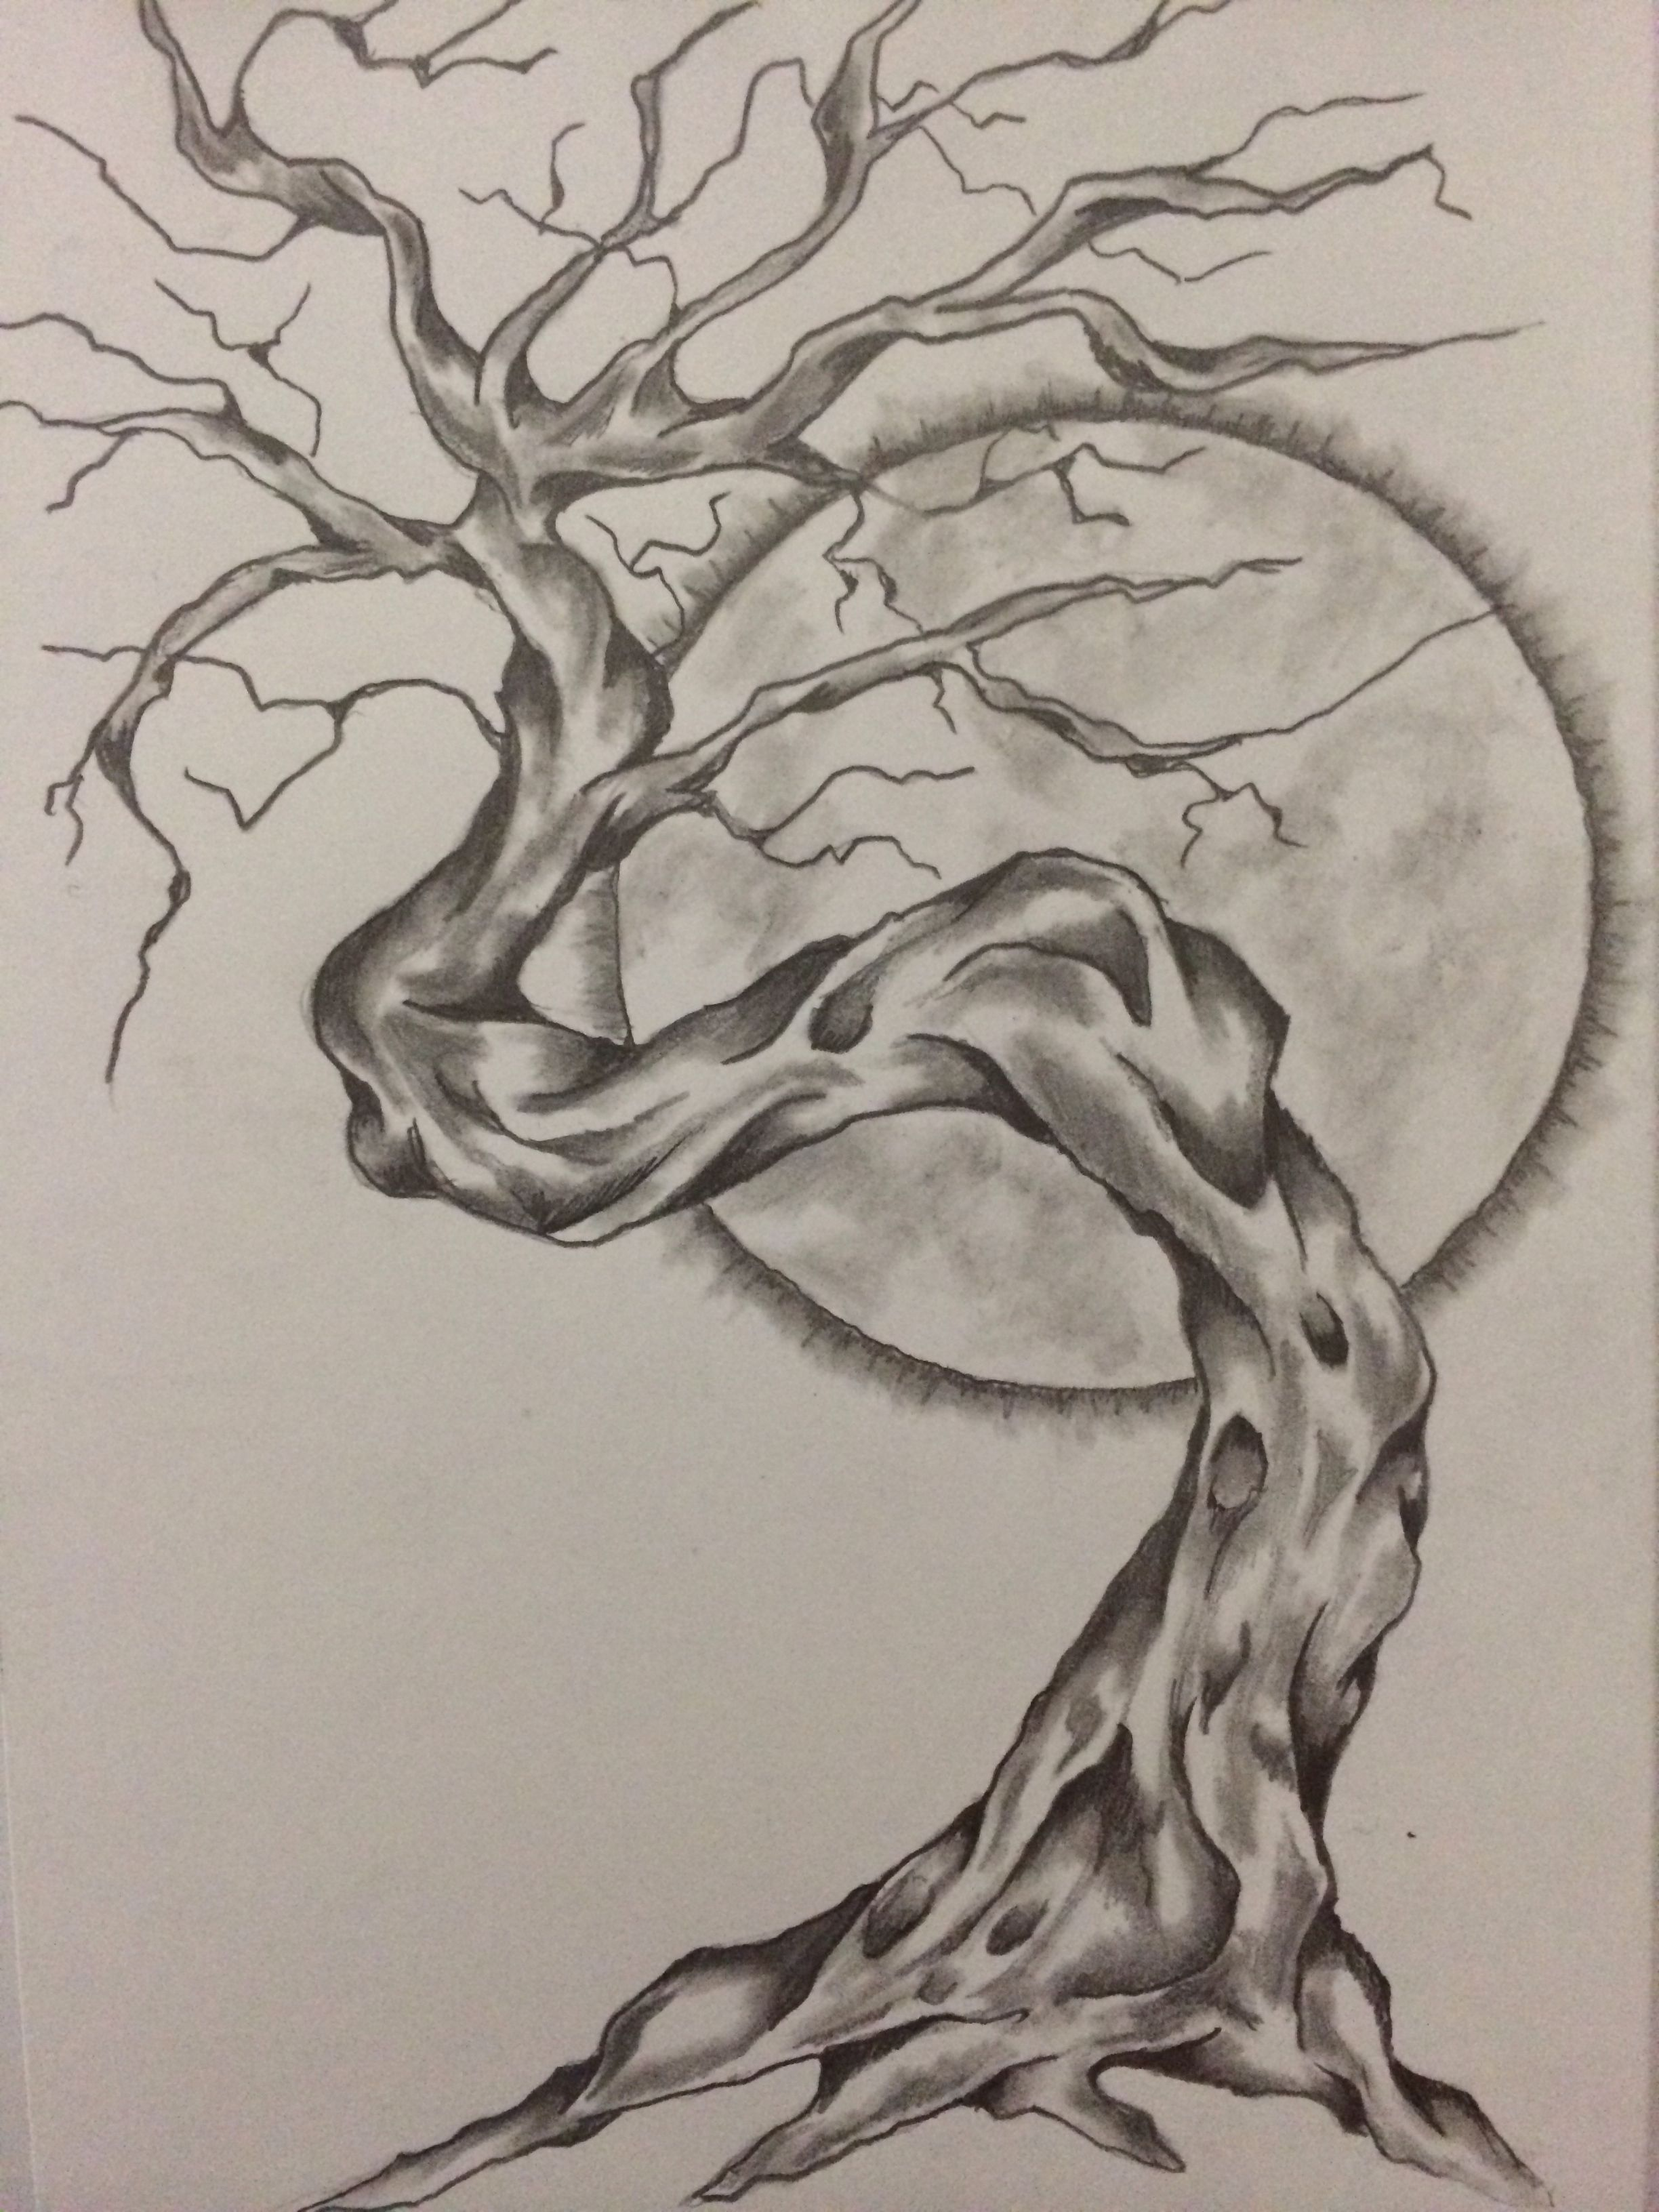 e596d6273 Tree tattoo sketch by - Ranz | Tattoo Art / Sketches - All Pieces ...